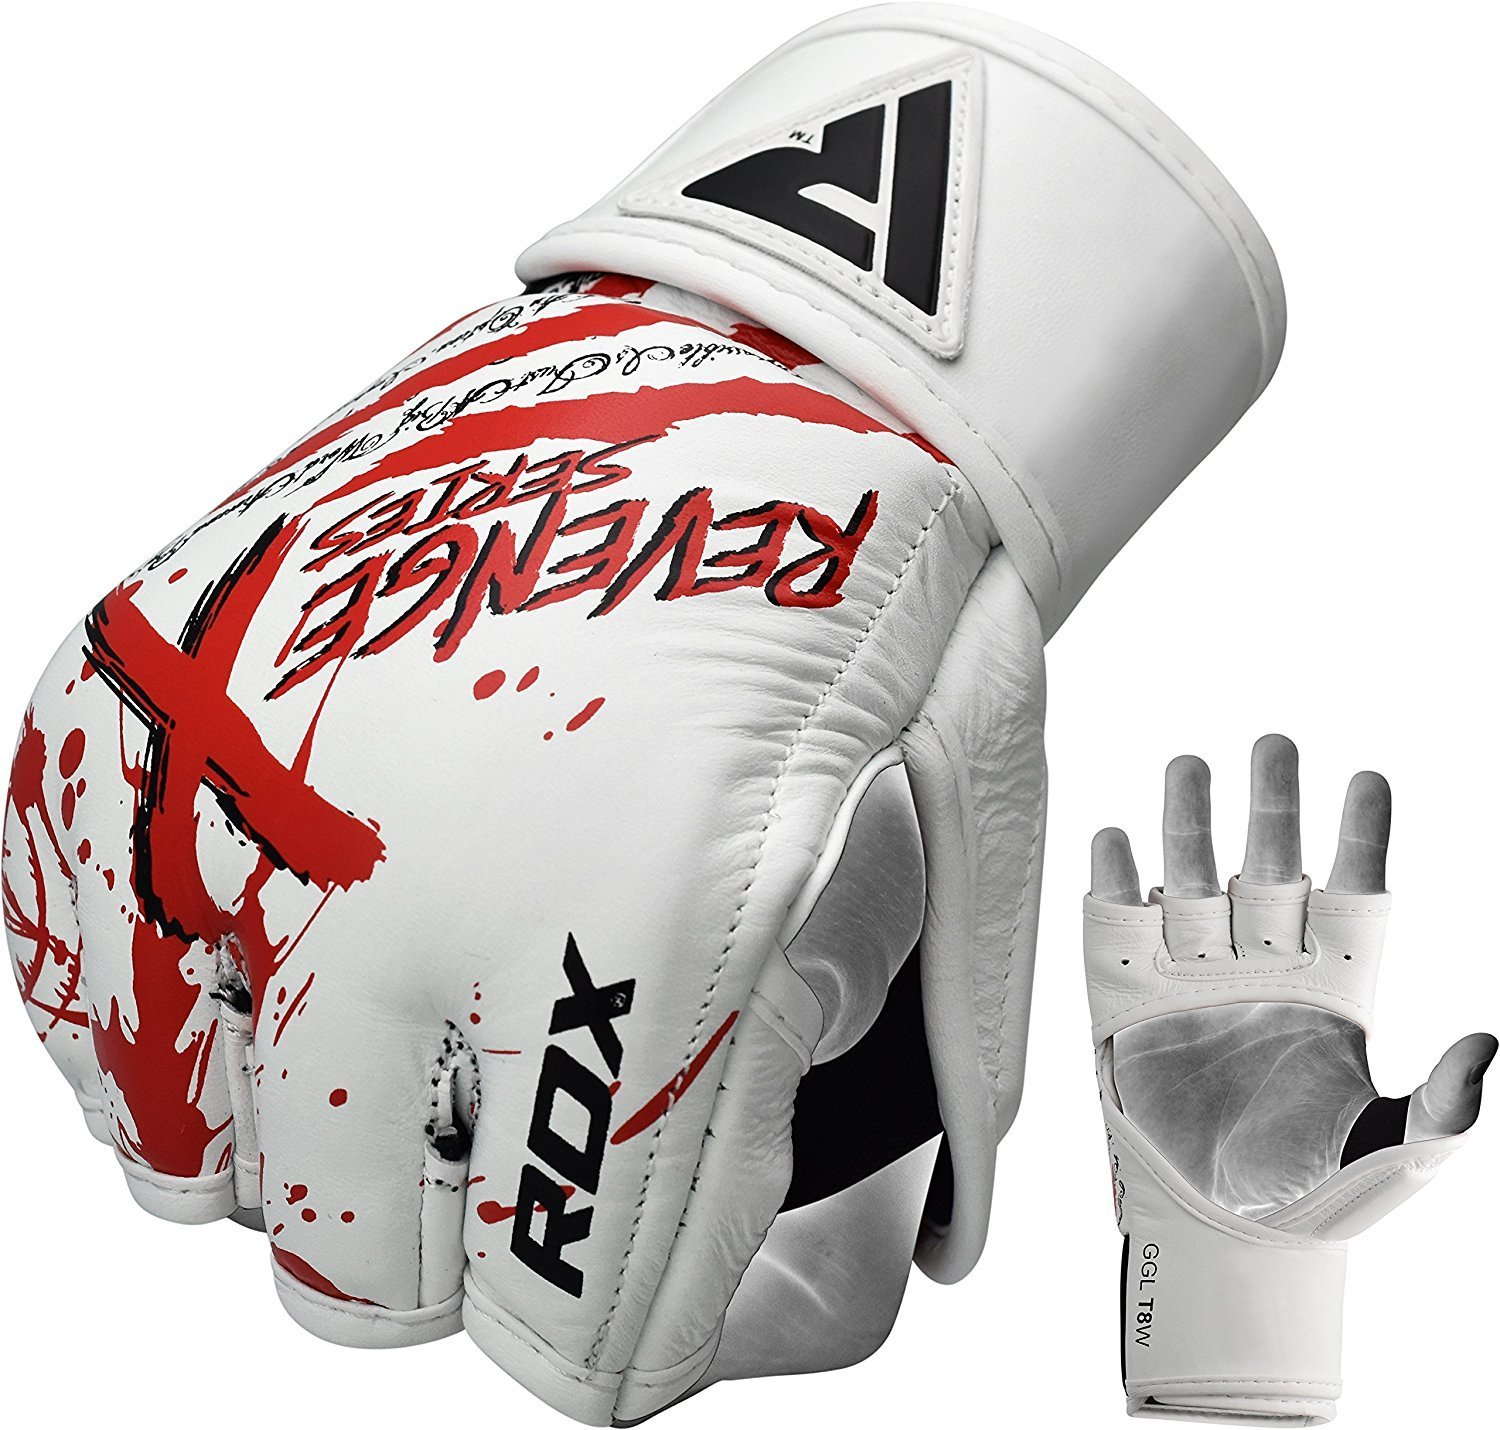 RDX T8 MMA Gloves Punching Boxing Bag Grappling Training Fighting UFC White